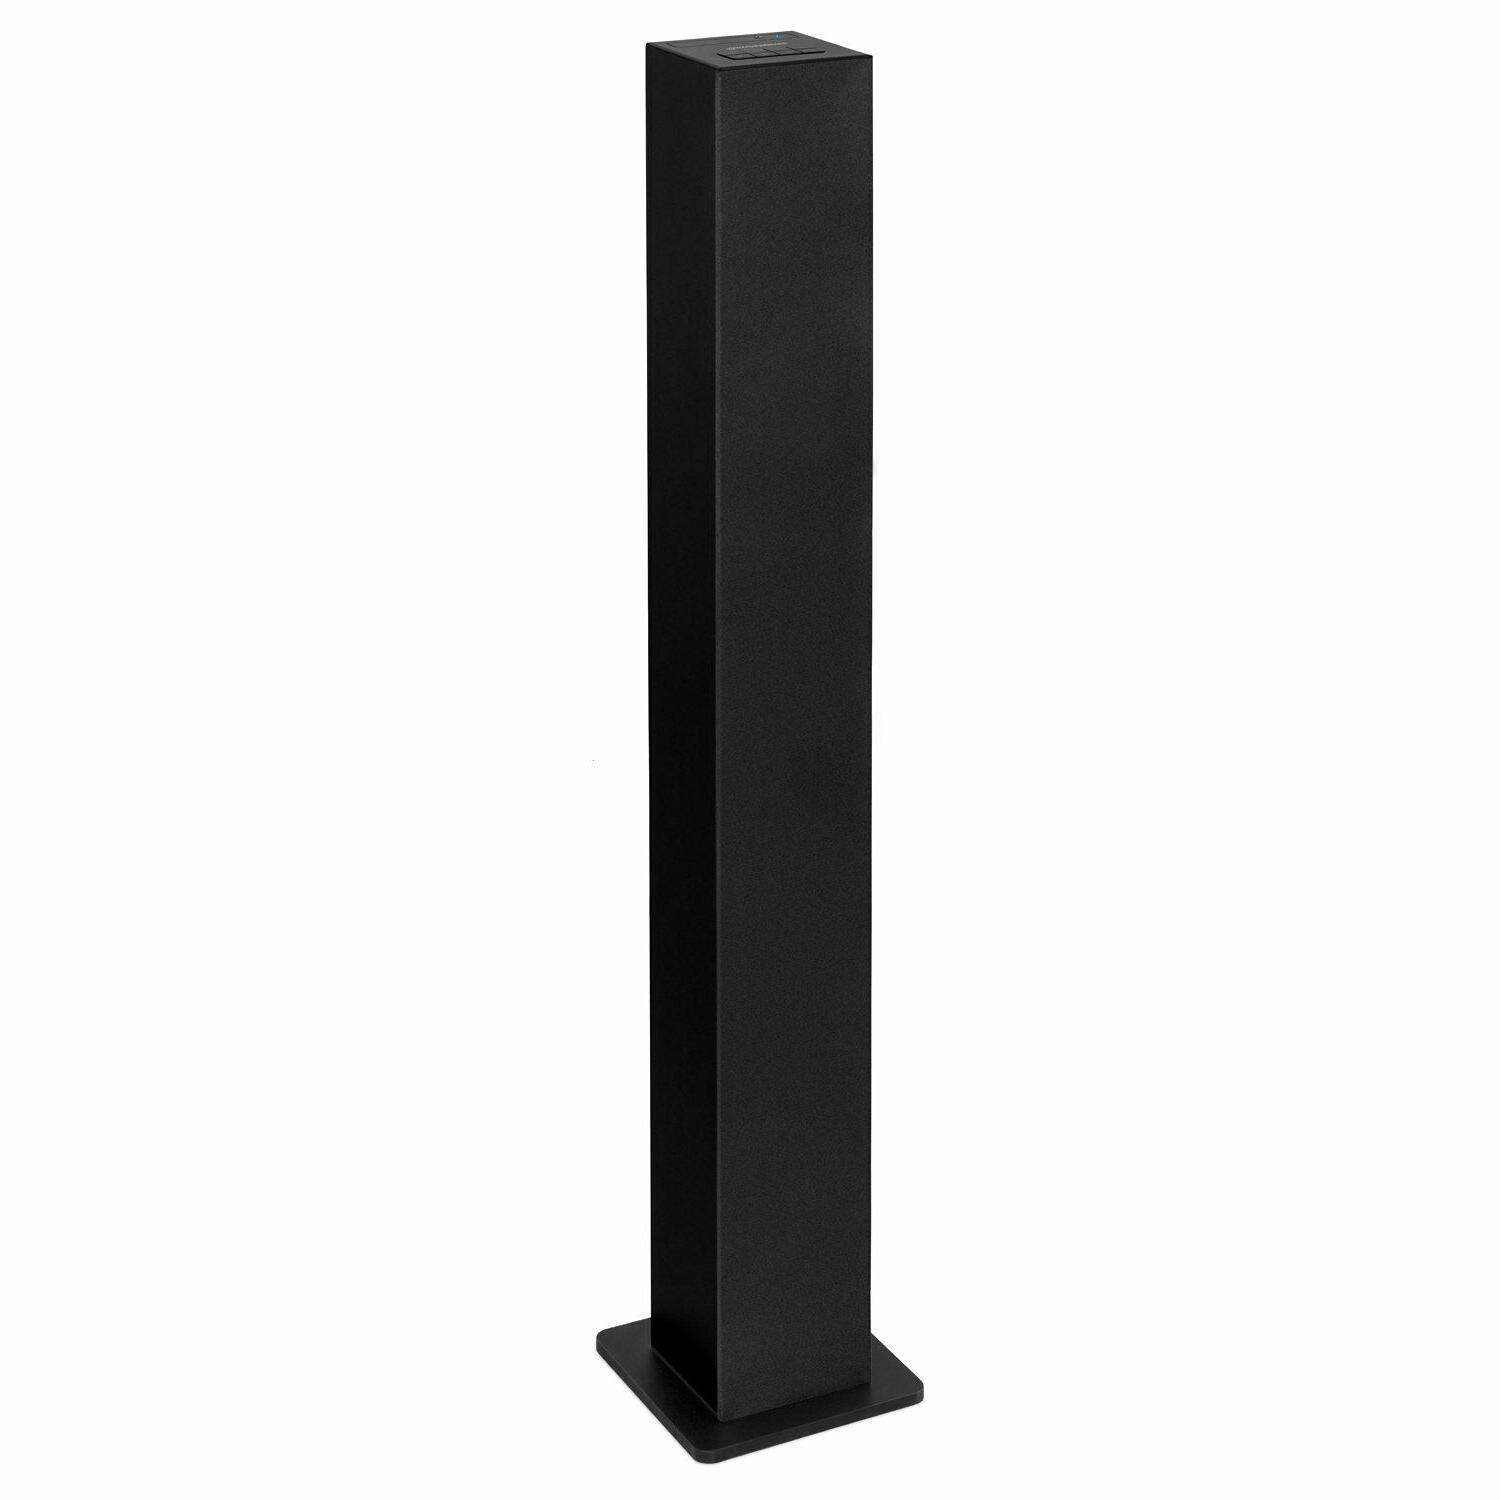 itsb 300 bluetooth tower stereo